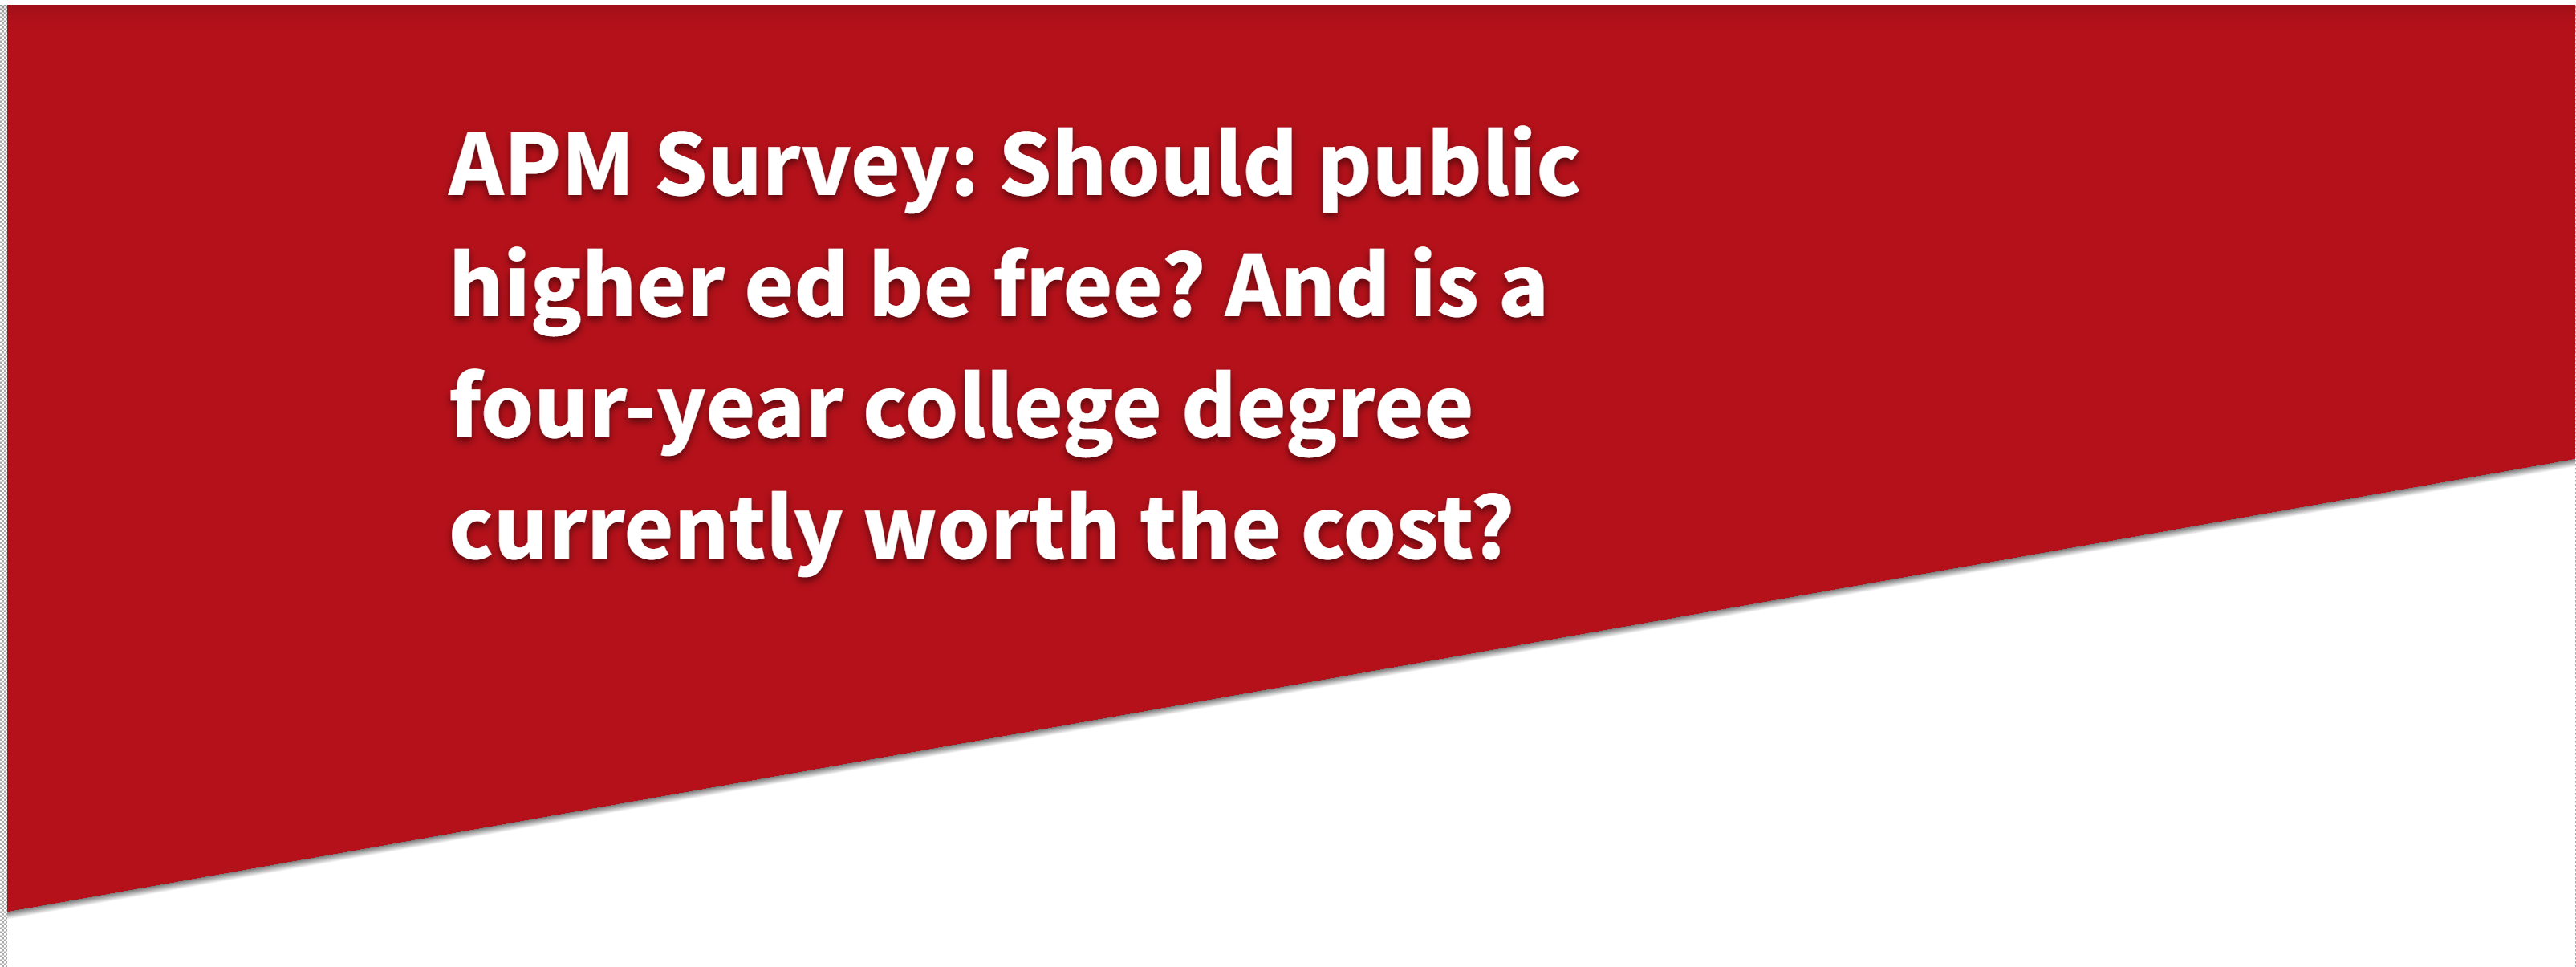 DESPITE HIGH COSTS, NEW POLL SHOWS MOST YOUNG ADULTS THINK A FOUR-YEAR DEGREE IS WORTH IT